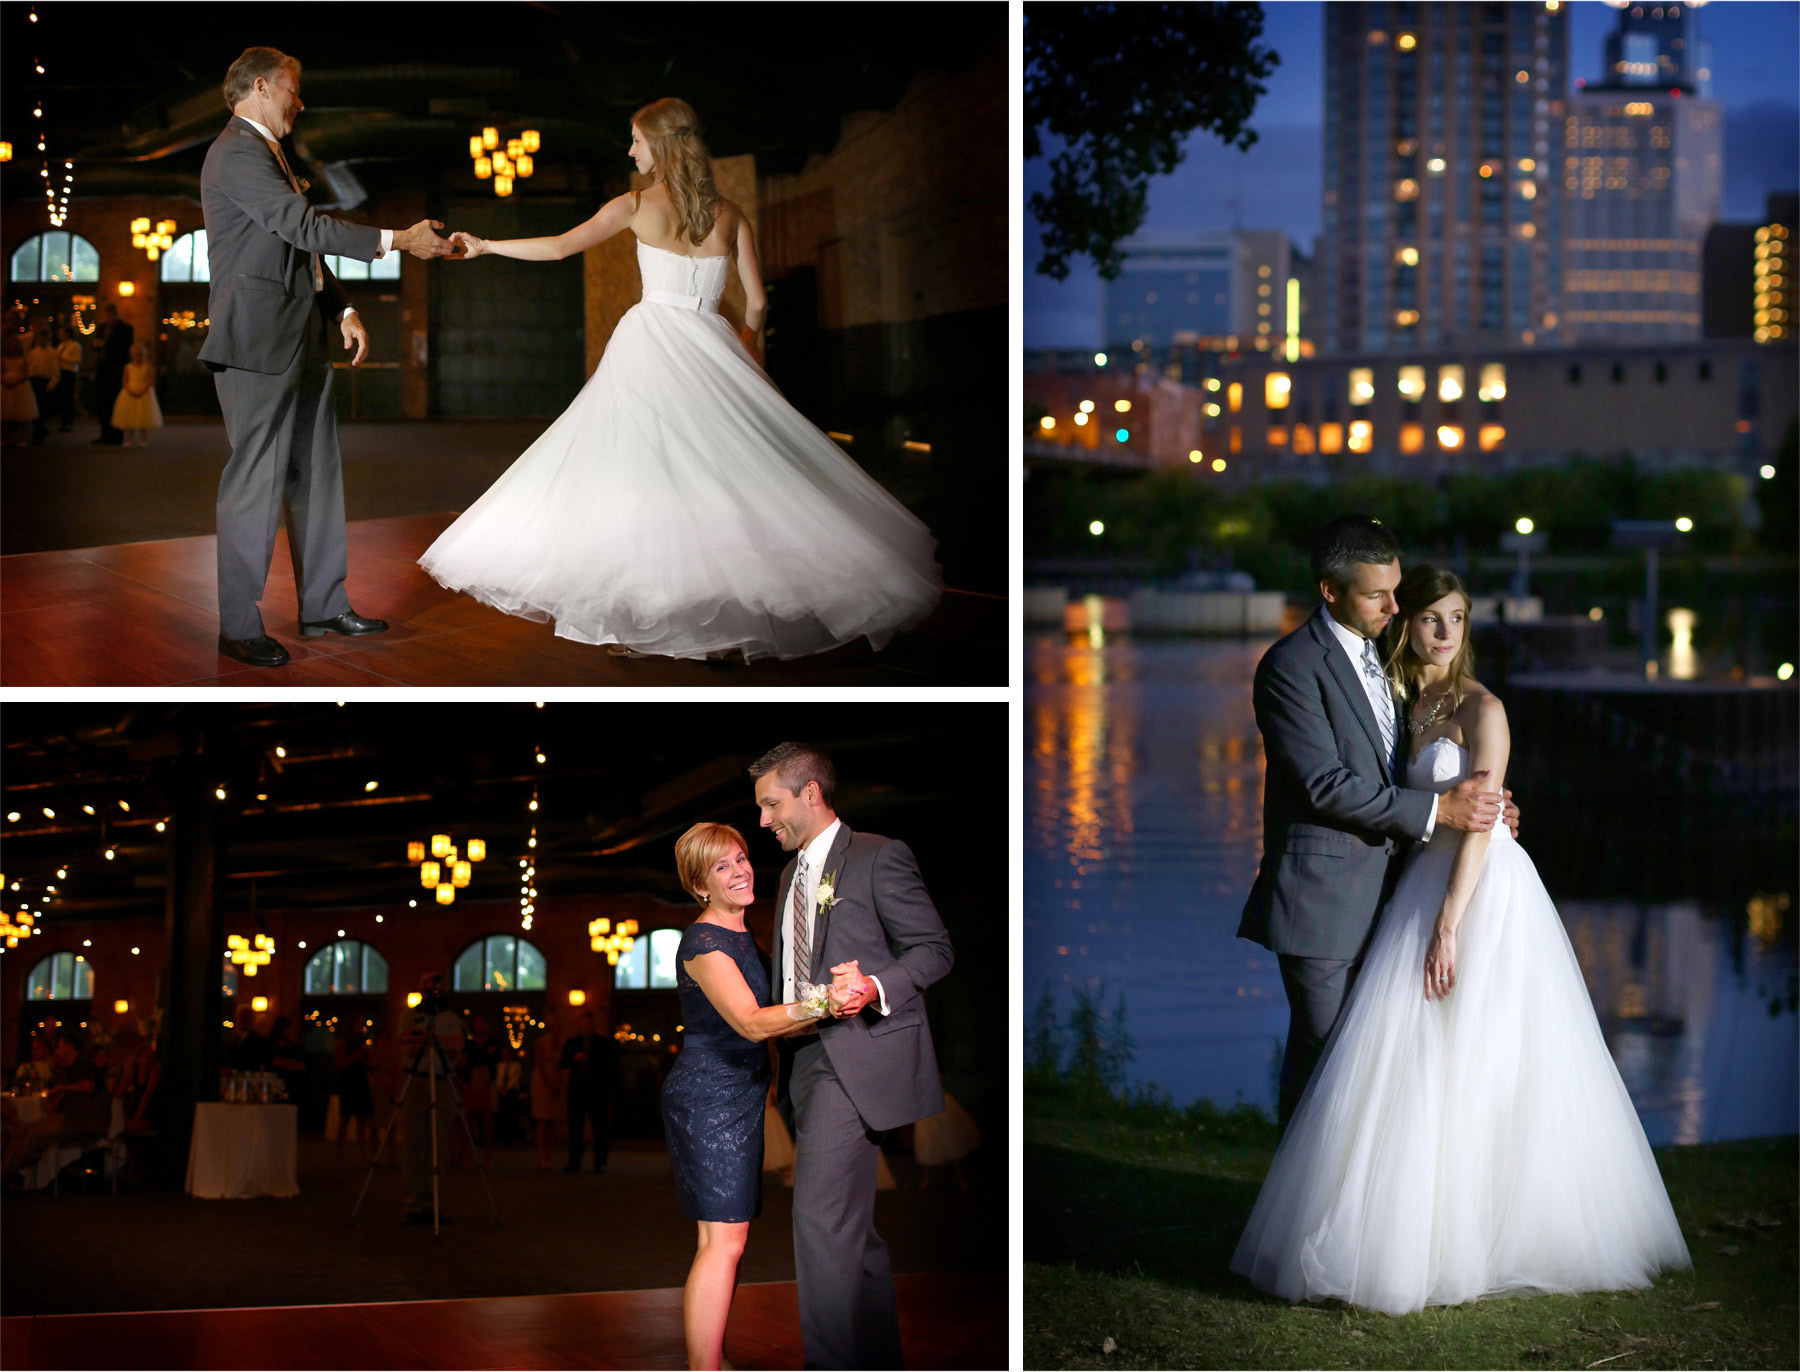 20-Minneapolis-Minnesota-Wedding-Photographer-by-Andrew-Vick-Photography-Summer-Bride-Groom-Nicollett-Island-Pavilion-Dress-Dance-Twirl-Mother-Parents-Downtown-Night-Mississippi-River-Katie-and-Travis.jpg